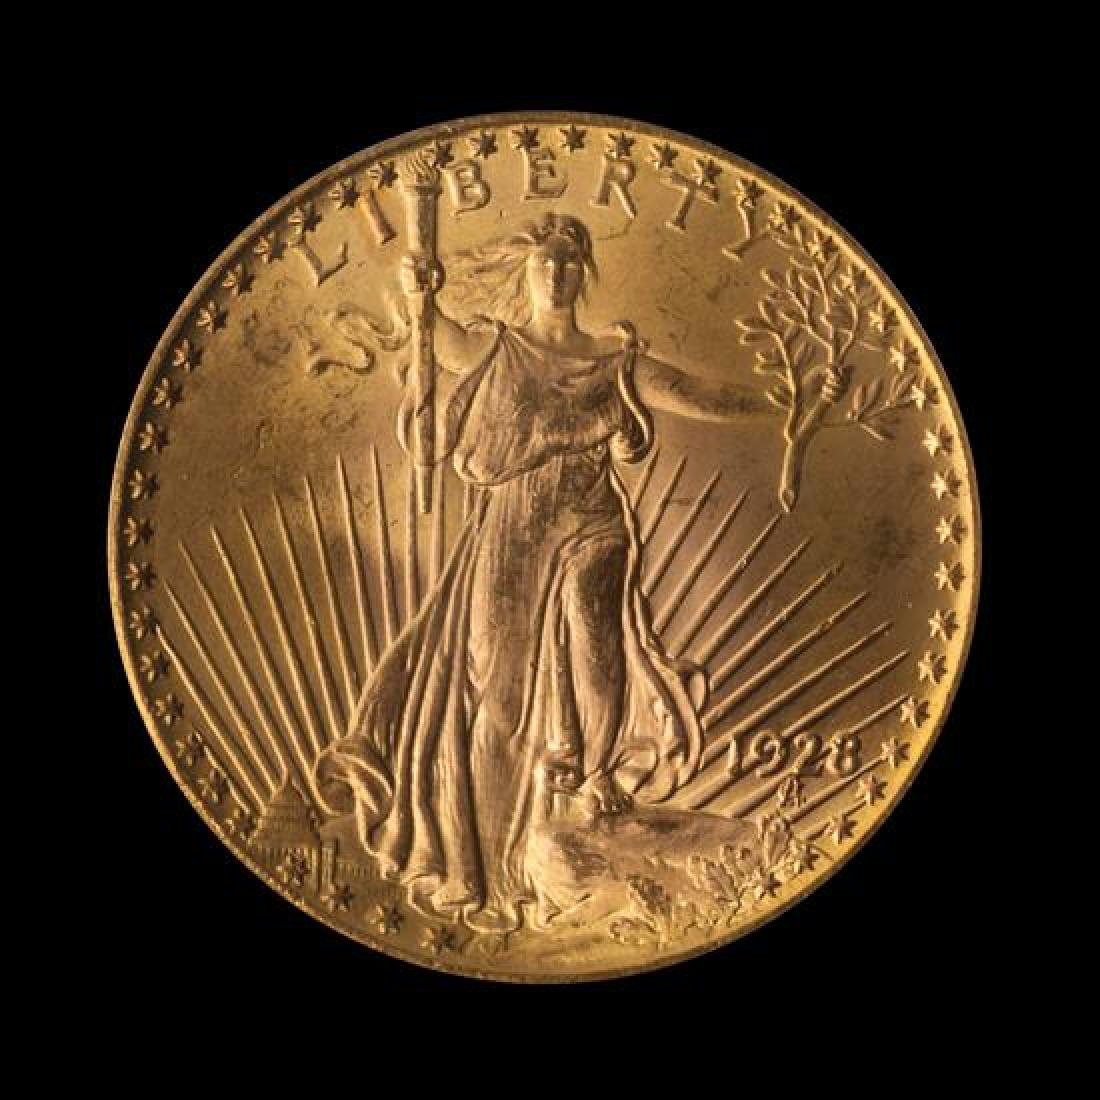 A United States 1928 Saint-Gaudens $20 Gold Coin